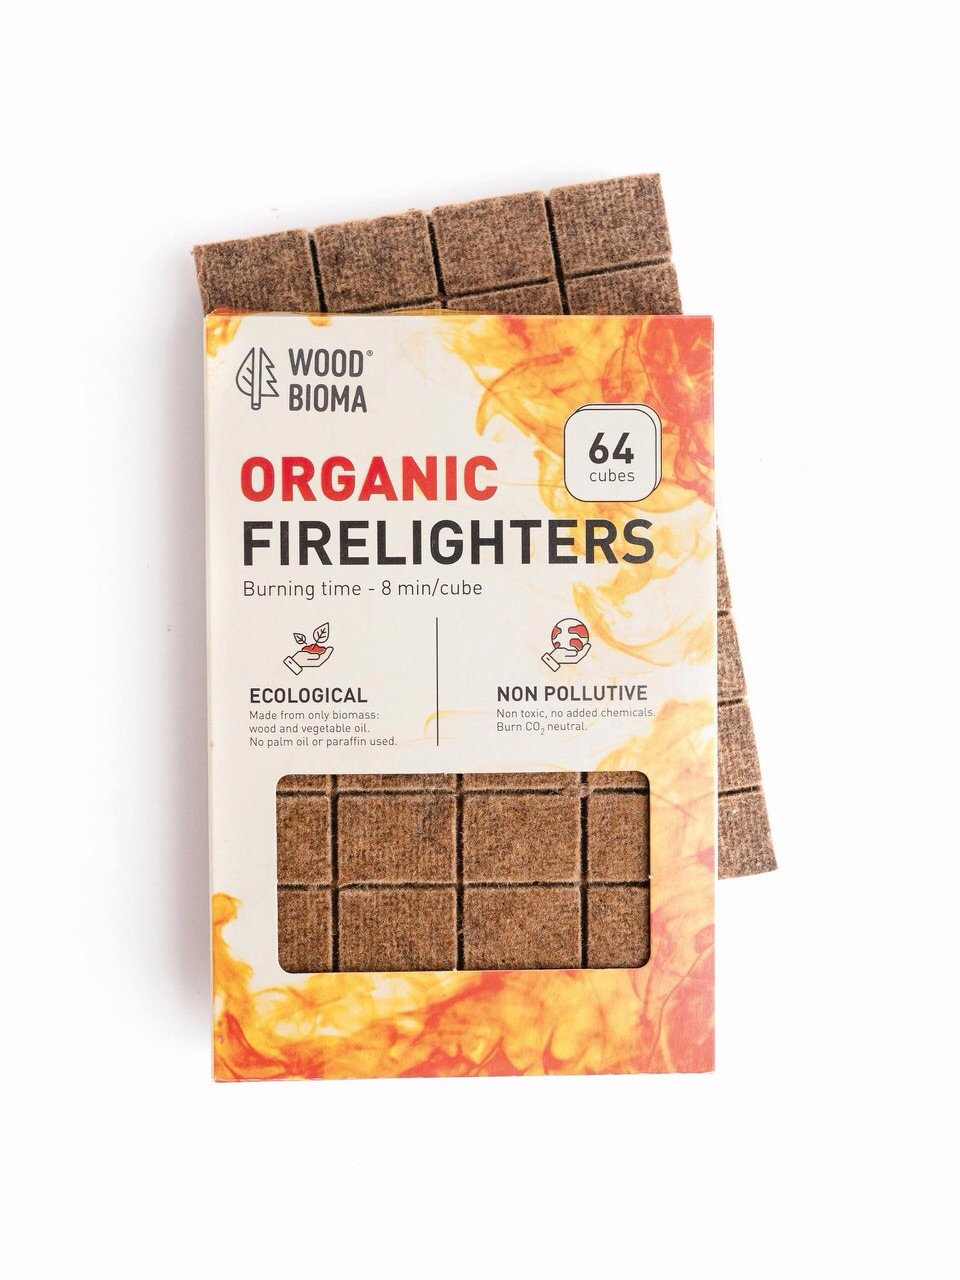 Woodbioma Organic Firelighters Stove 32 Cubes, Fire Starter Logs Charcoal Grill BBQ Barbecue Duraflame Kamado Big Green Eggs Quick Start Fireplace Primo Smokers Hiking, Waterproof